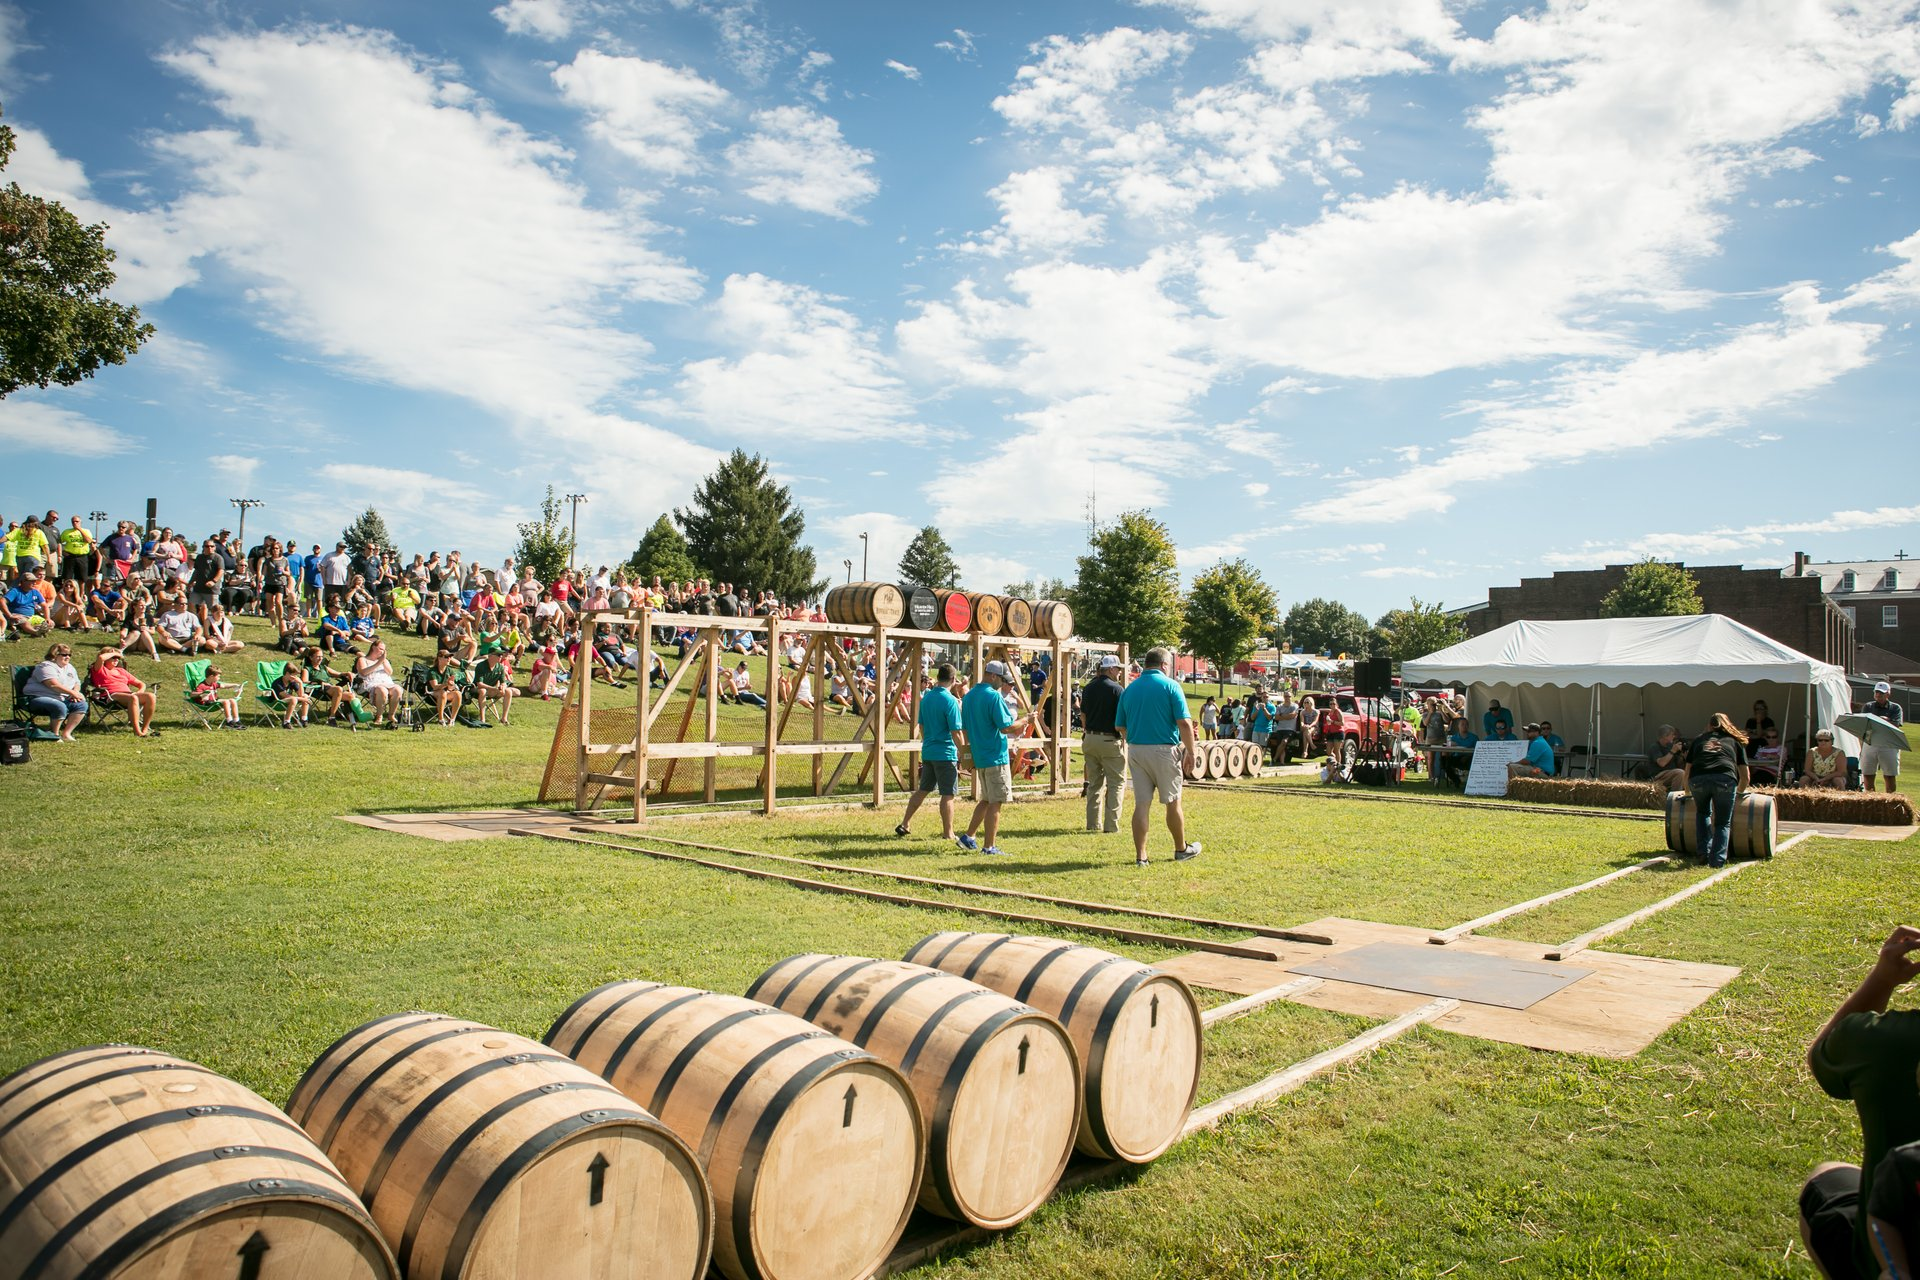 Kentucky Bourbon Festival in Kentucky - Best Season 2020